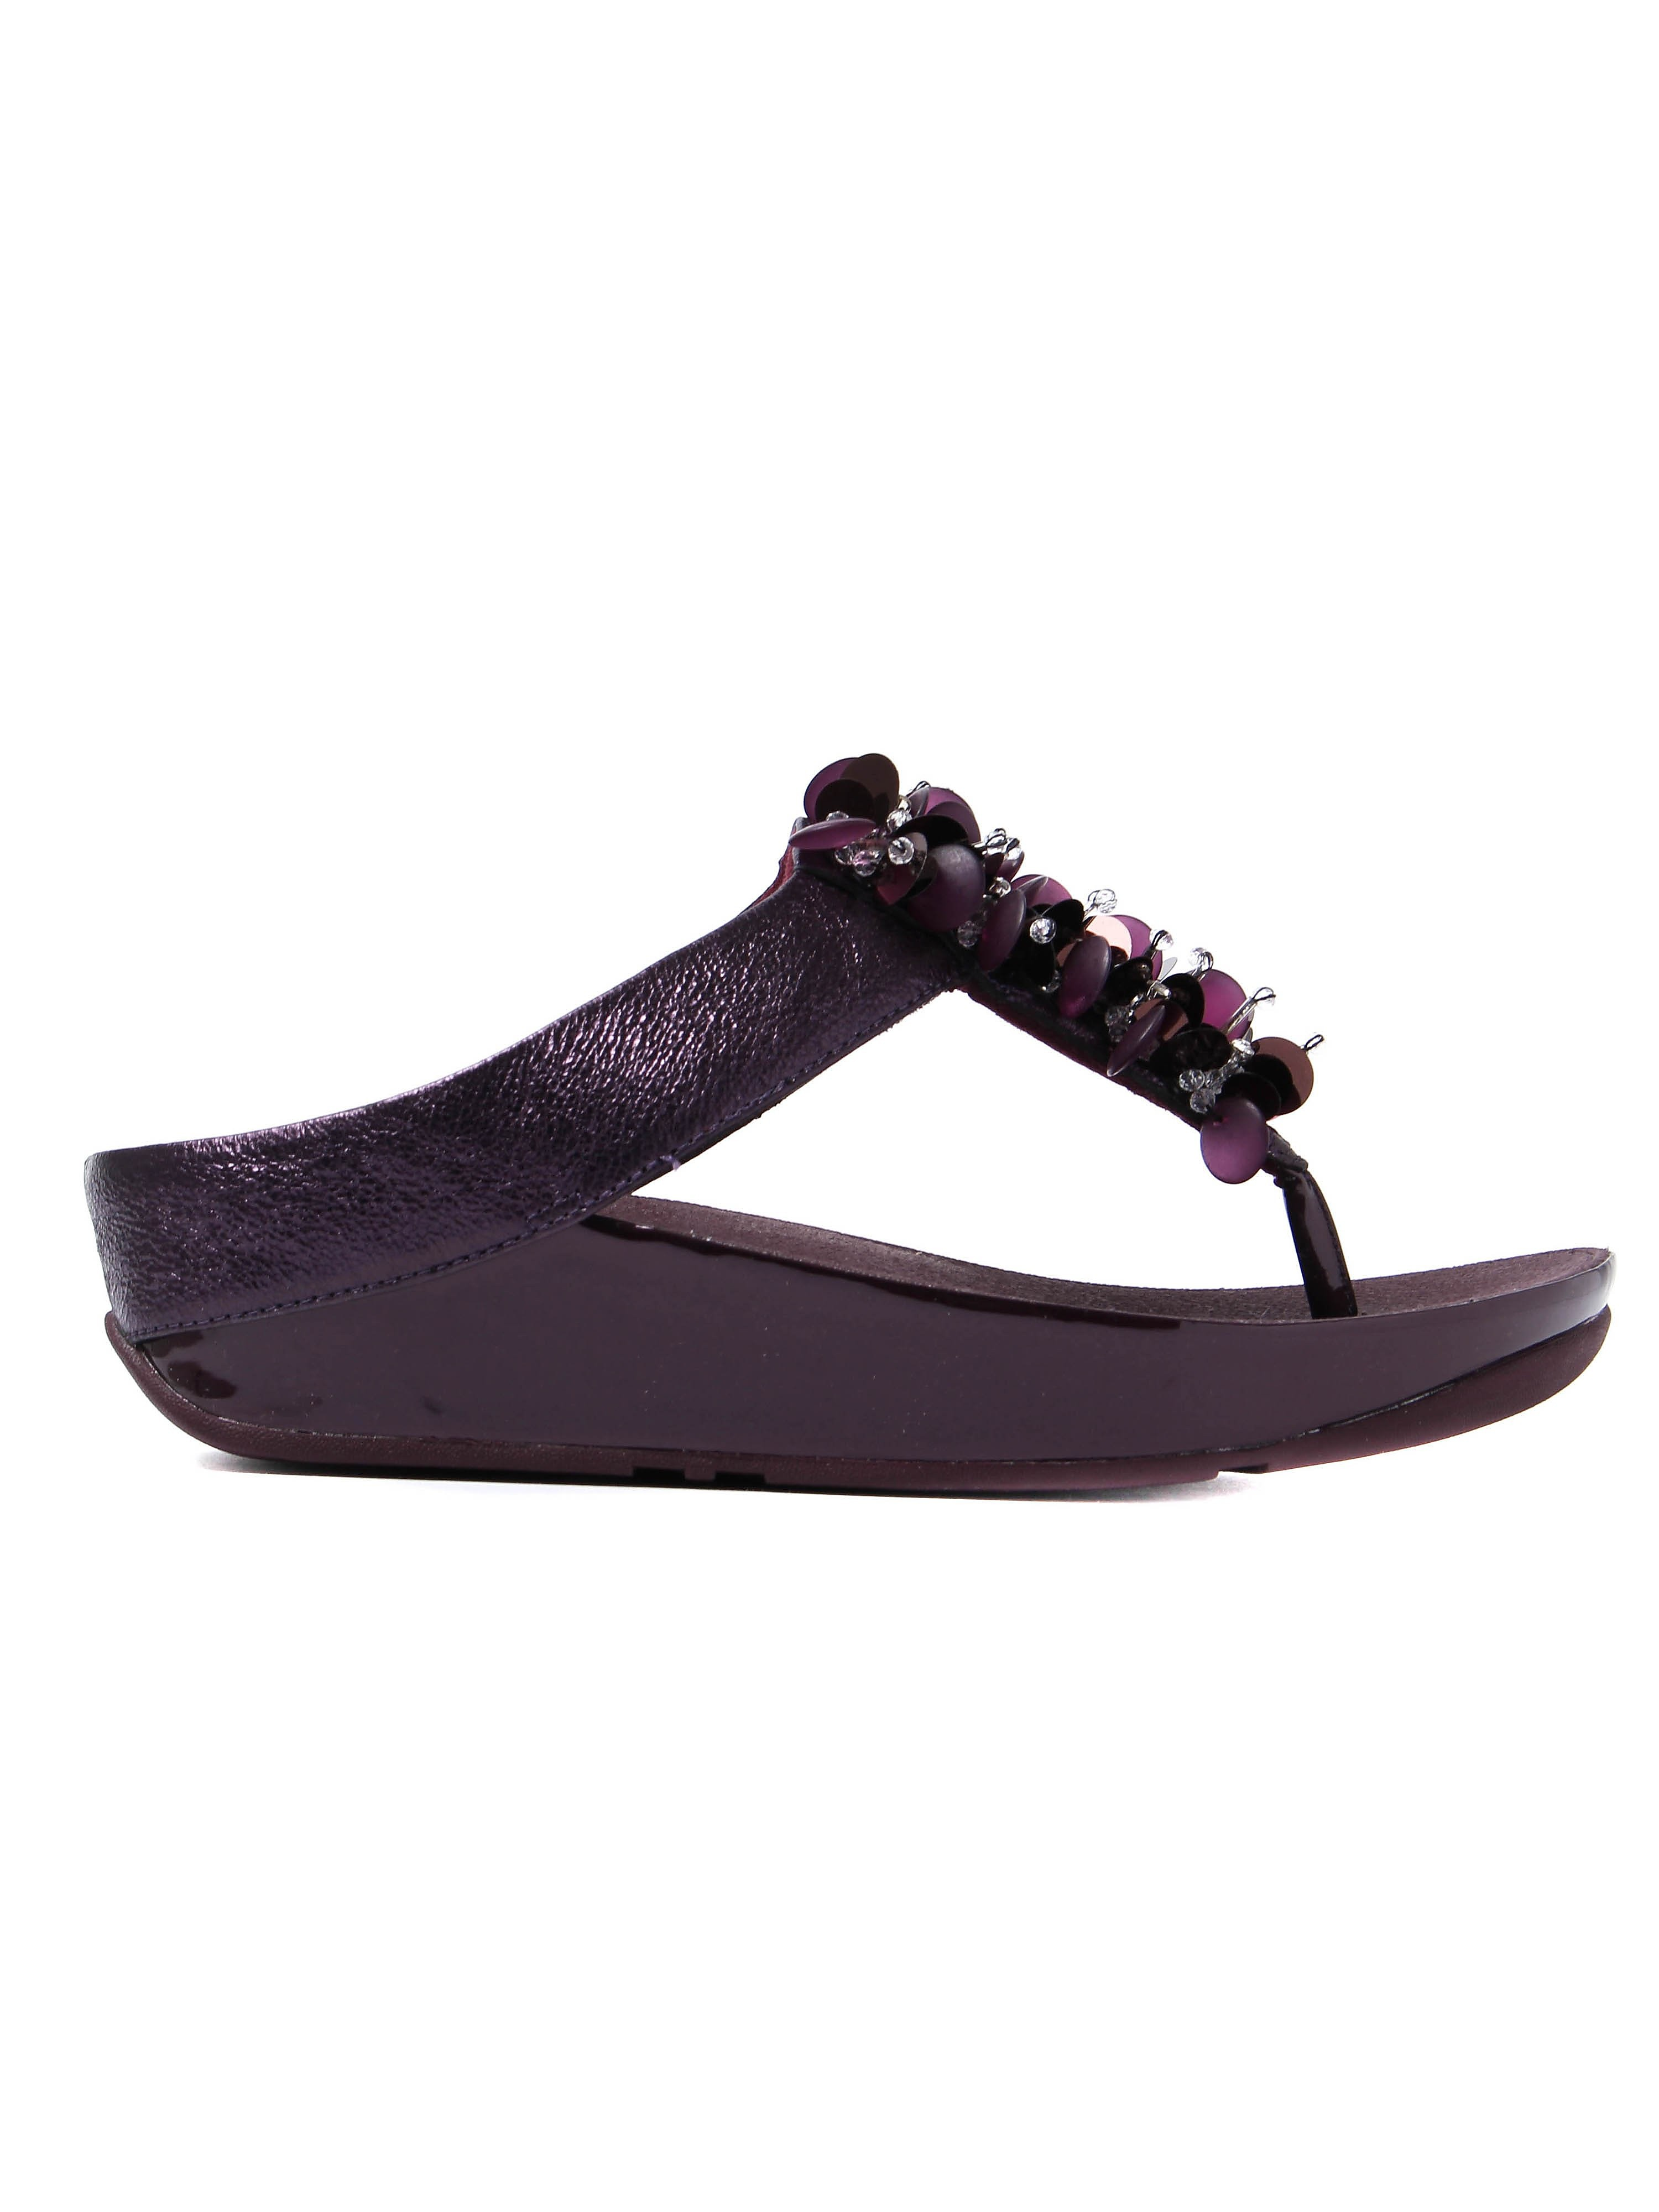 FitFlop Women's Boogaloo Toe-Post Sandals - Deep Plum